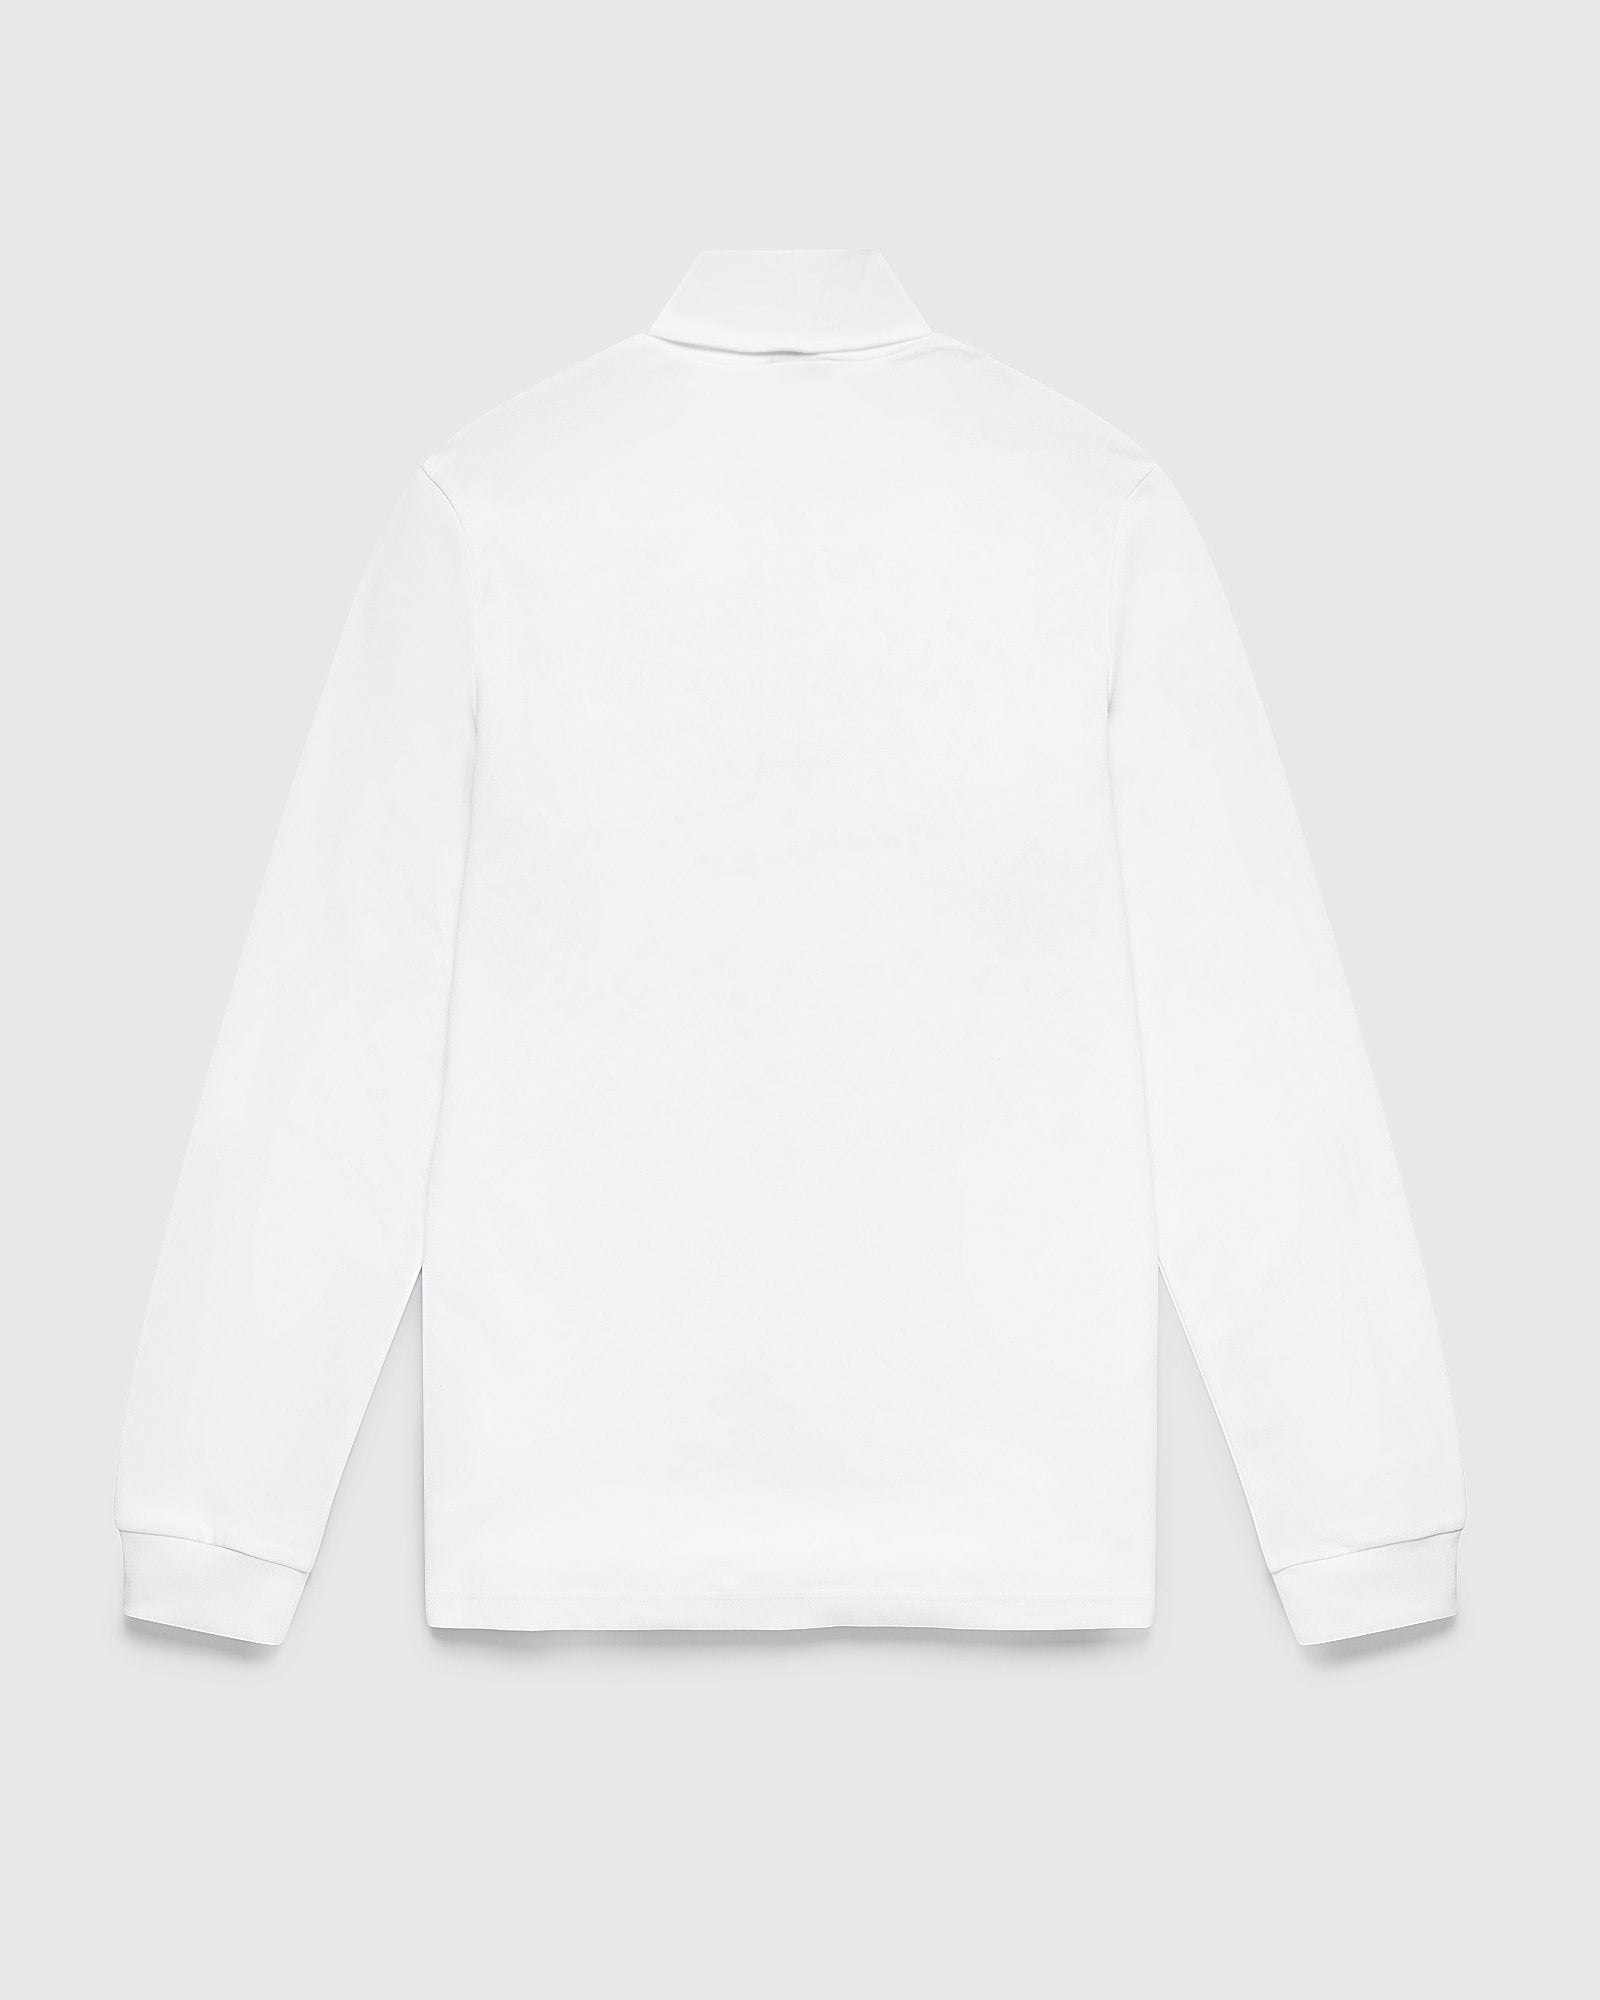 INTERLOCK TURTLENECK - WHITE IMAGE #2